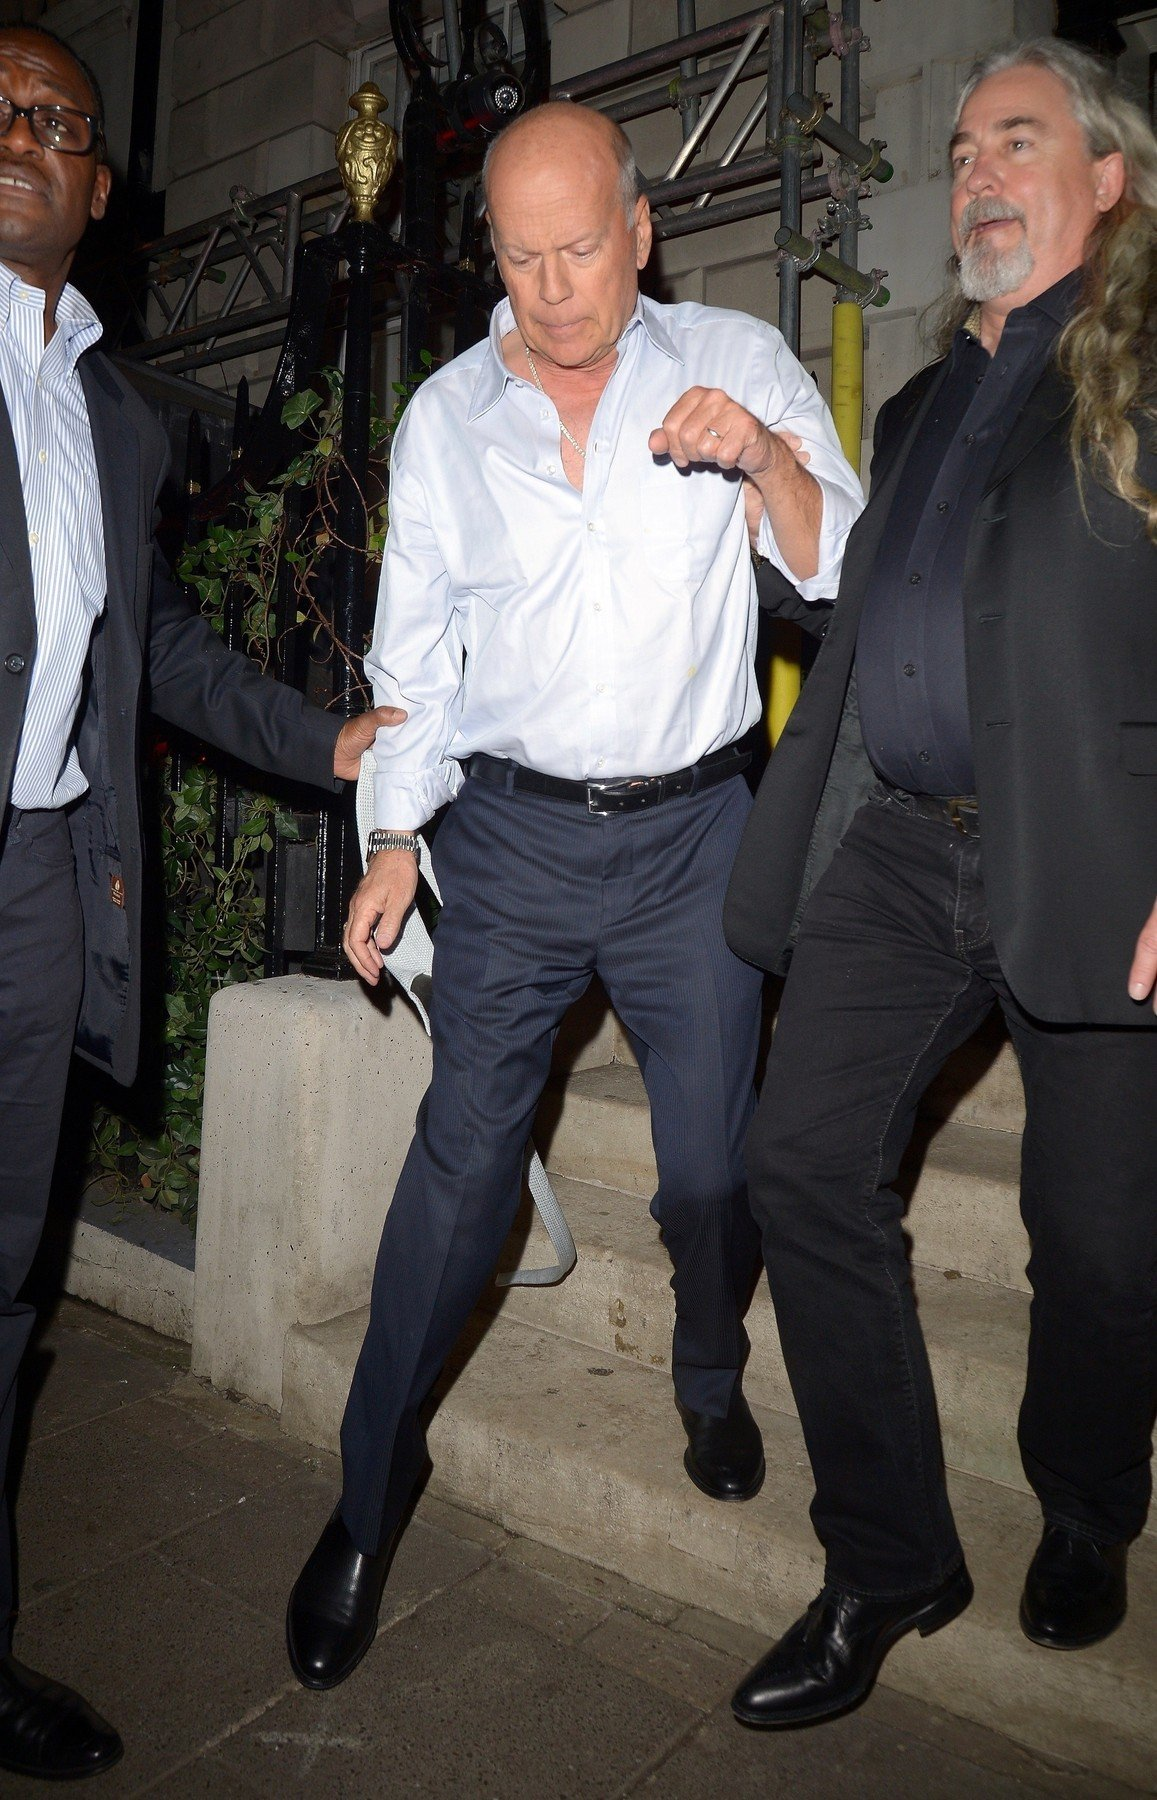 BGUK_1451155 - London, UNITED KINGDOM  - A Very Intoxicated Bruce Willis is seen being helped into his car as he leaves Annabel's Private Members Club  Pictured: Bruce Willis    *UK Clients - Pictures Containing Children Please Pixelate Face Prior To Publication*, Image: 405745688, License: Rights-managed, Restrictions: , Model Release: no, Credit line: Profimedia, Xposurephotos